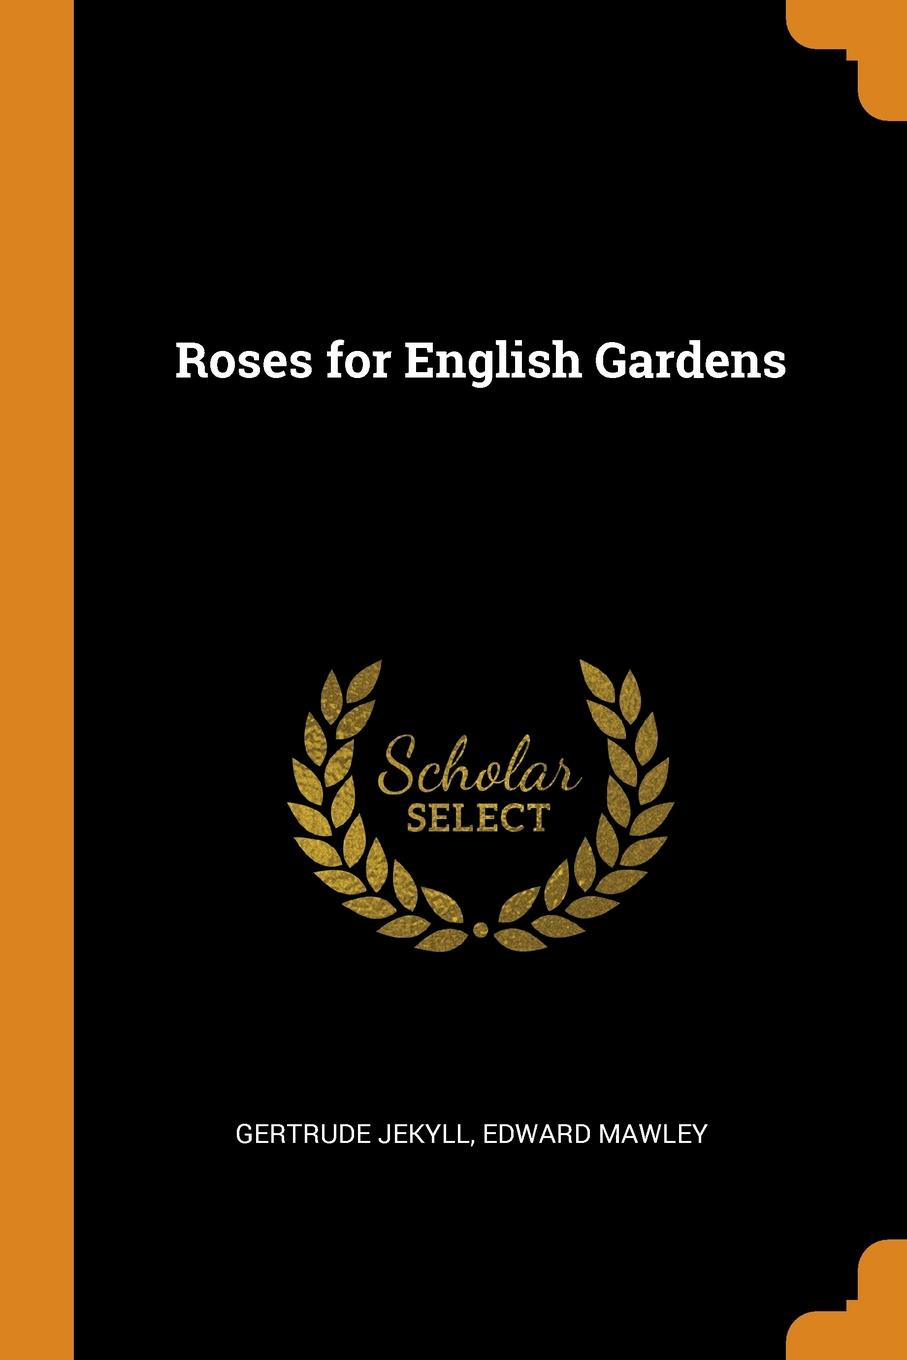 Gertrude Jekyll, Edward Mawley. Roses for English Gardens